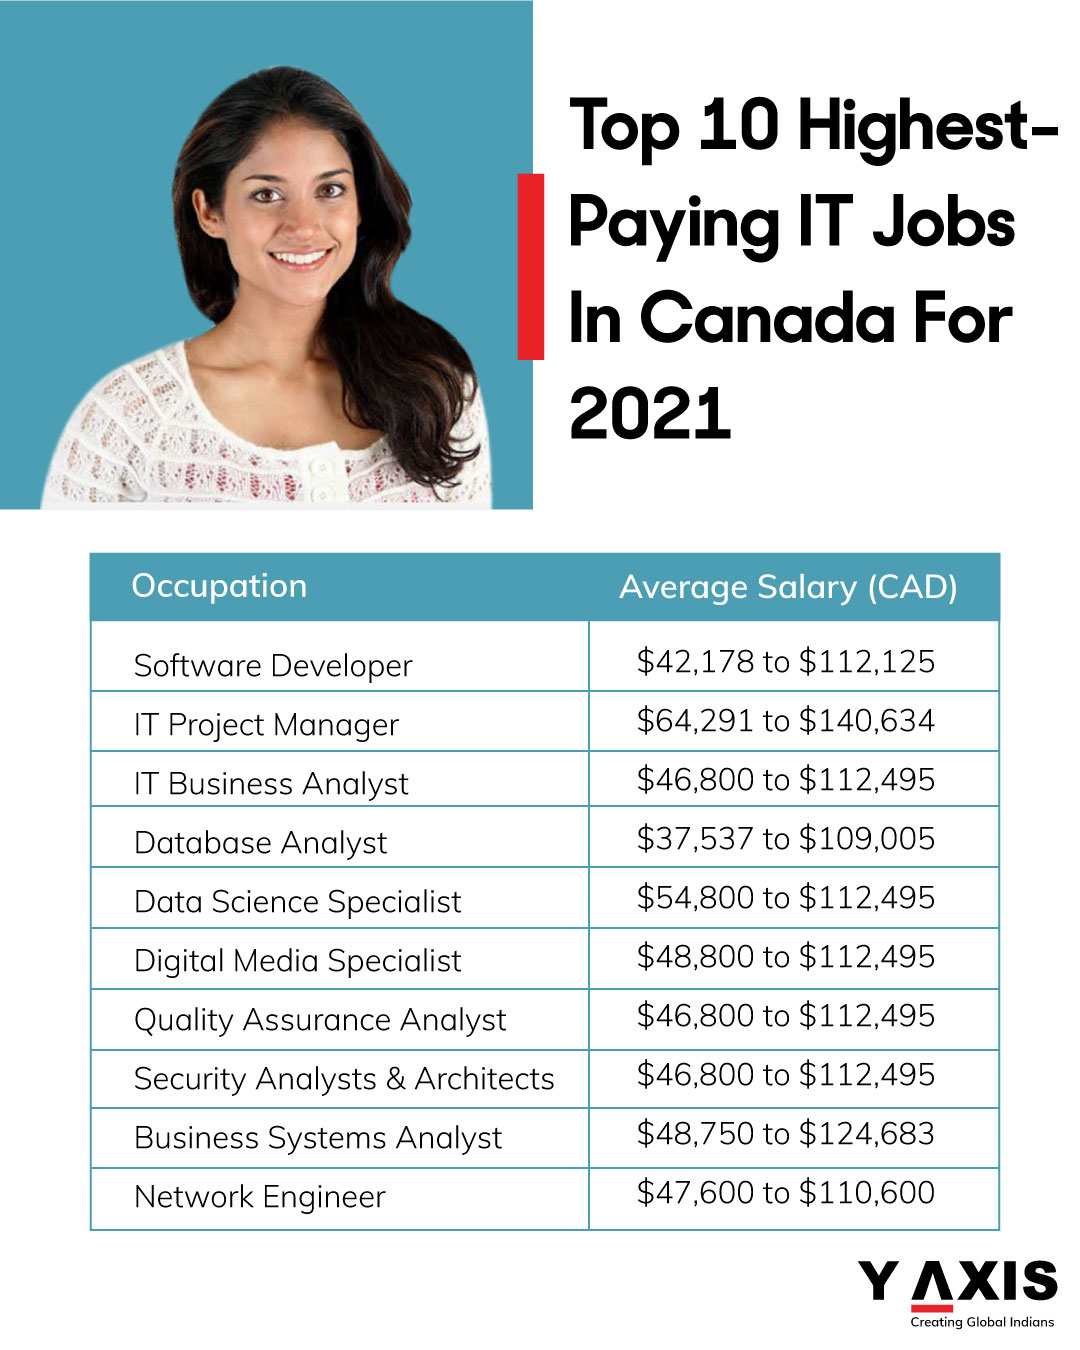 Top 10 Highest-Paying IT Jobs in Canada for 2021